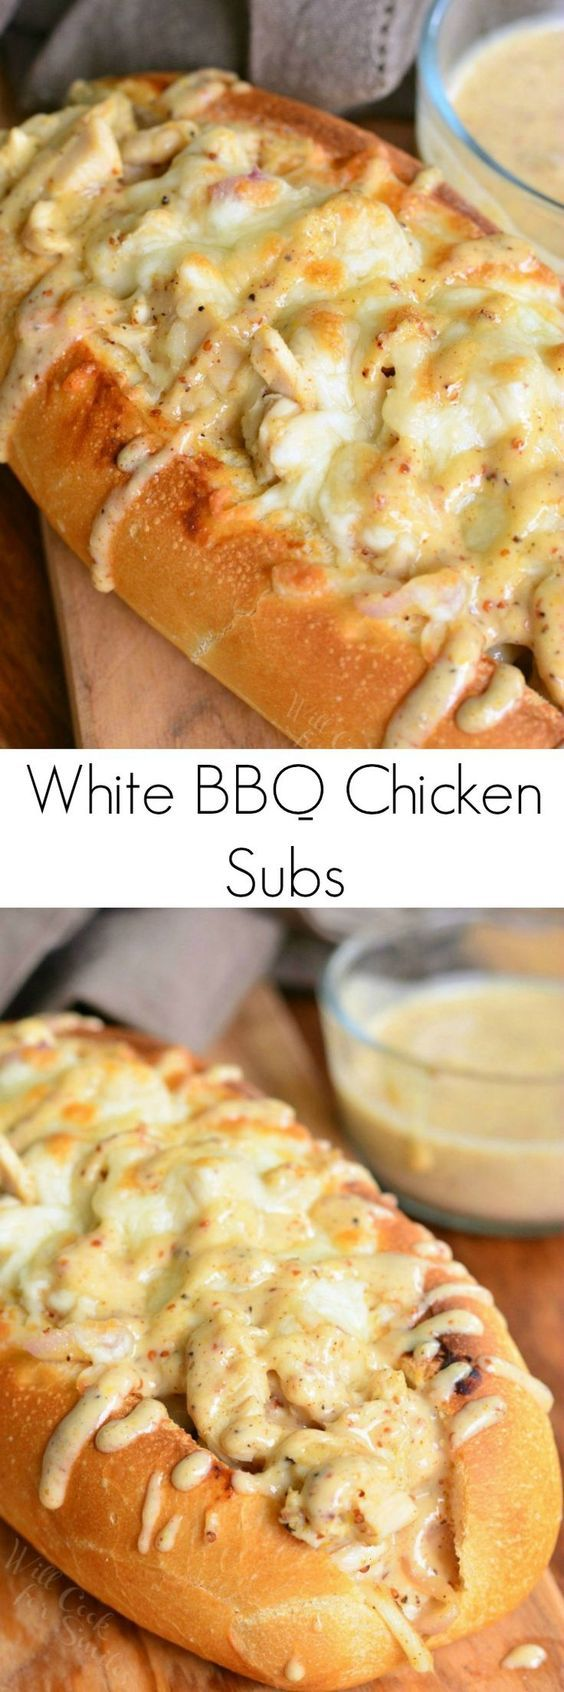 Total comfort and a whole lot of flavor! Delicious hot sub sandwich packed with chicken, cheese, and homemade white BBQ sauce. (Chicken Sandwich Recipes)